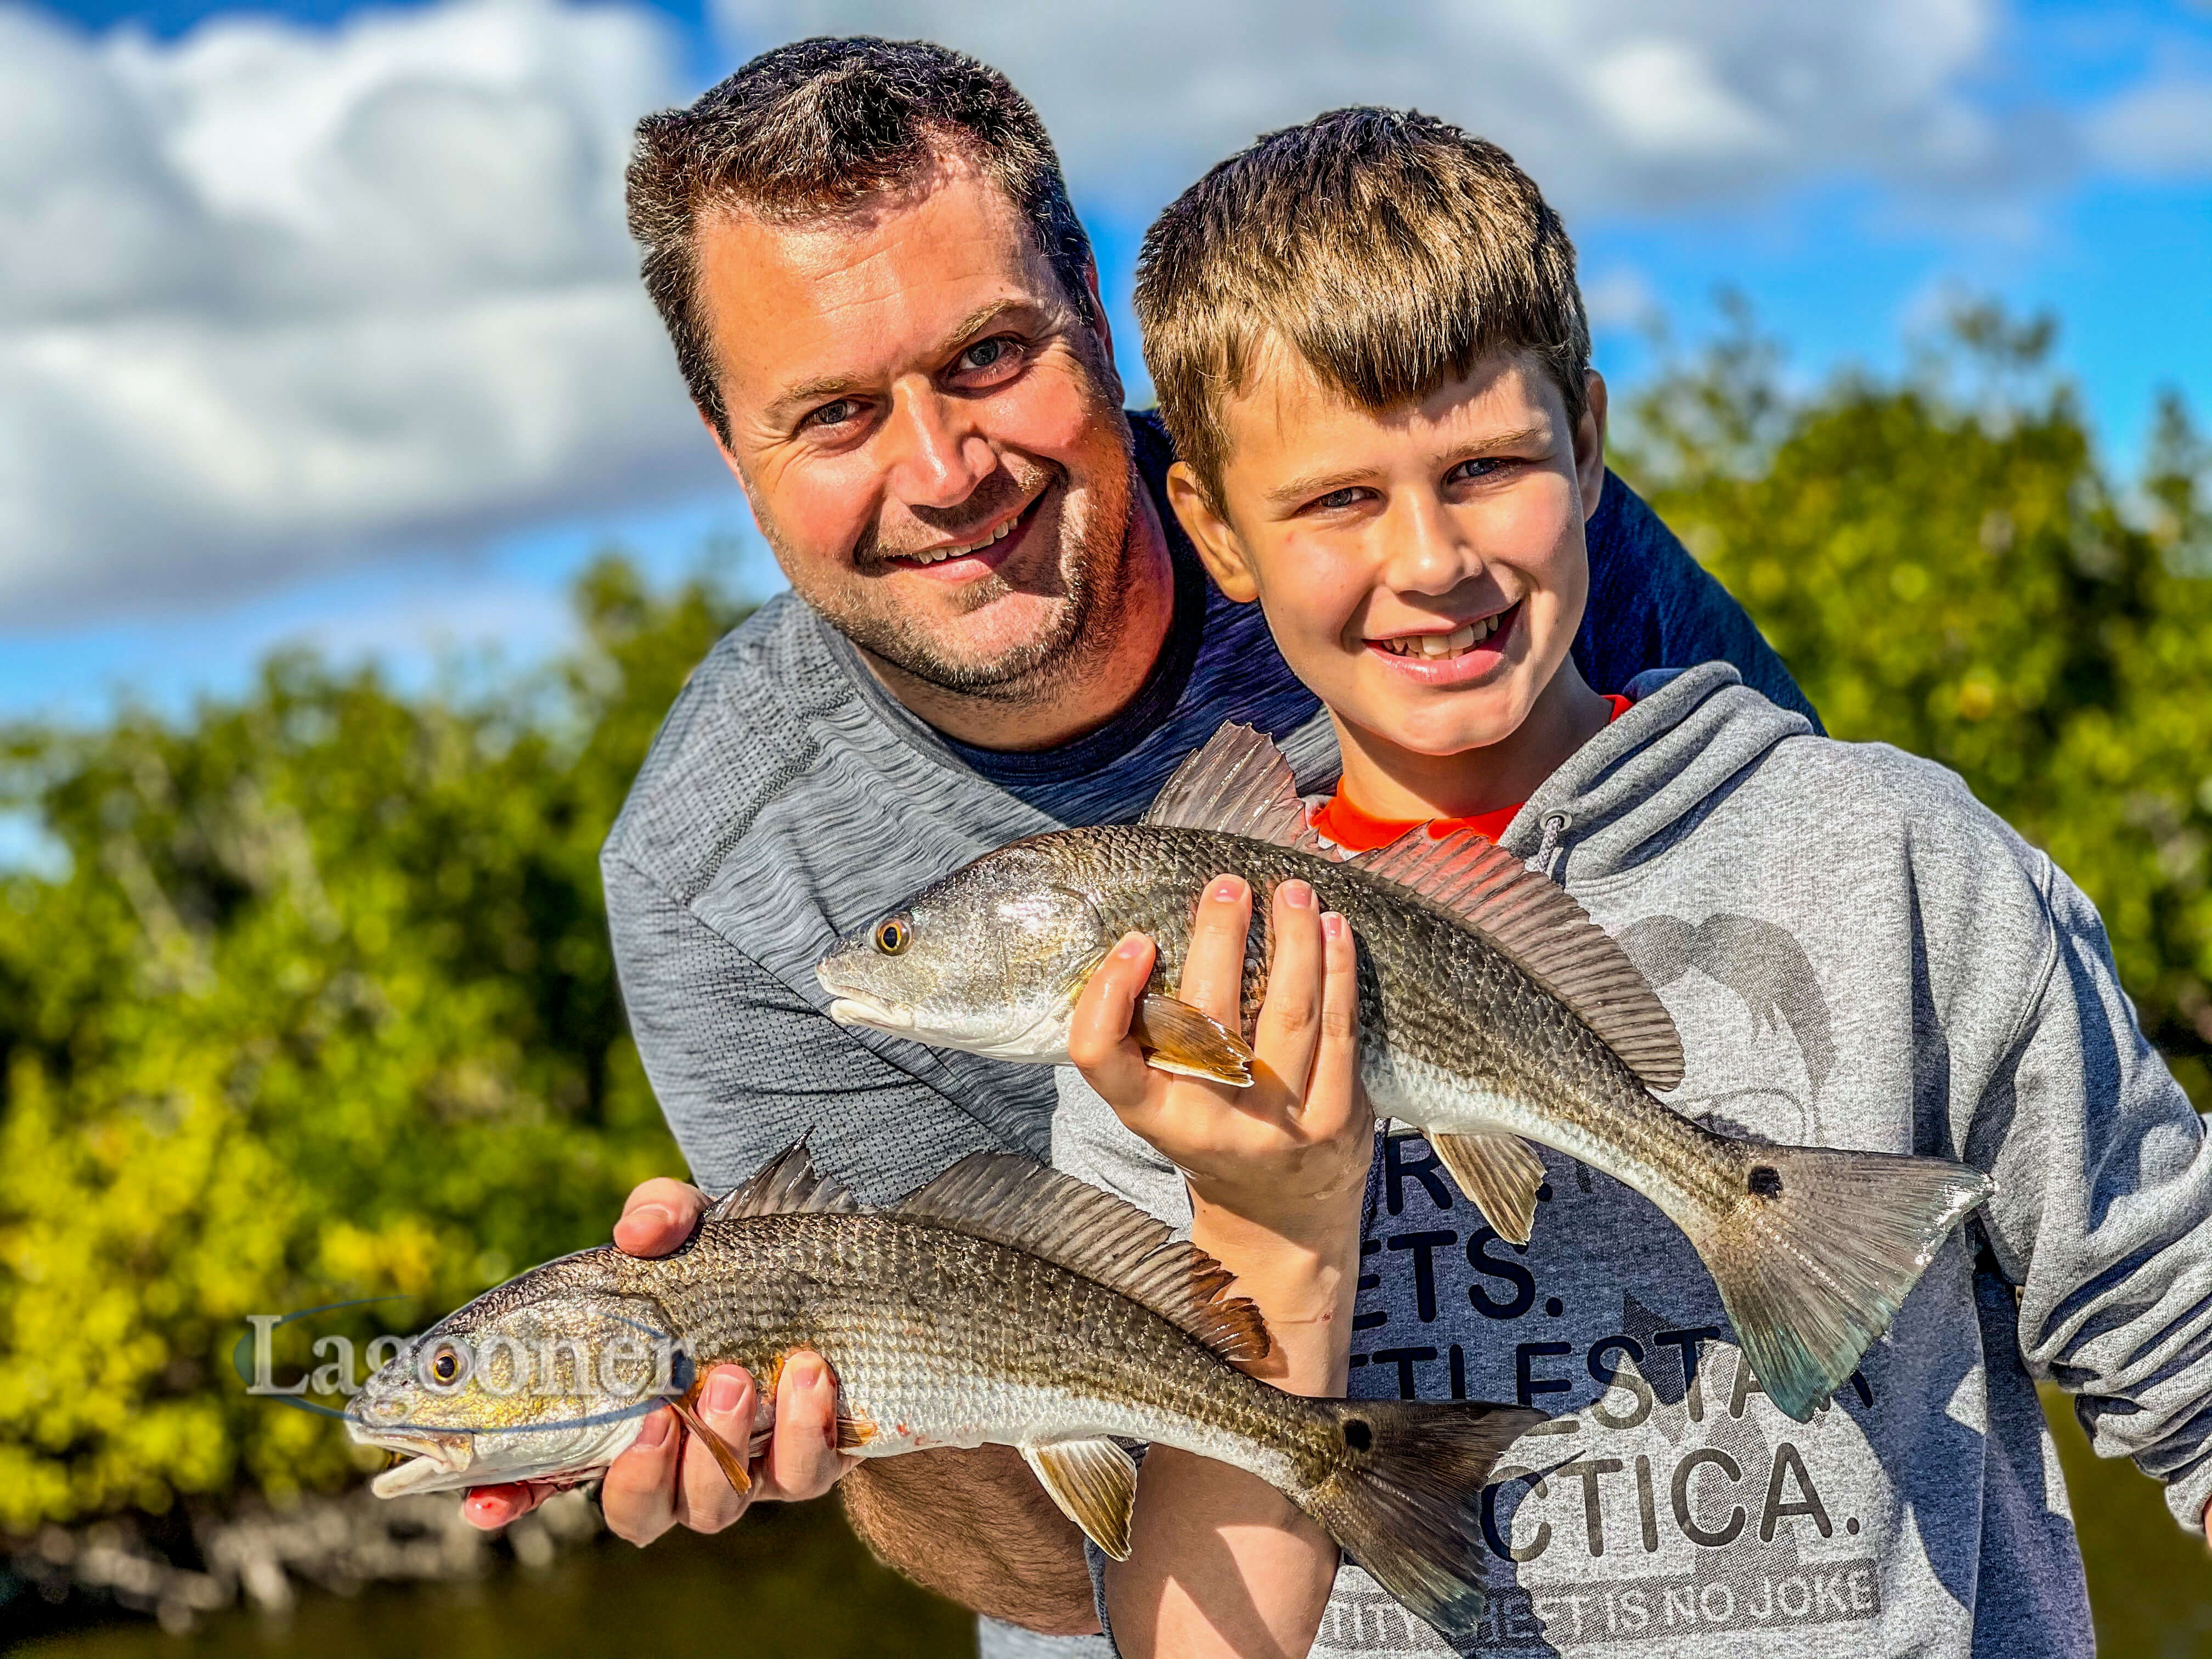 multiple redfish on the Indian River Lagoon